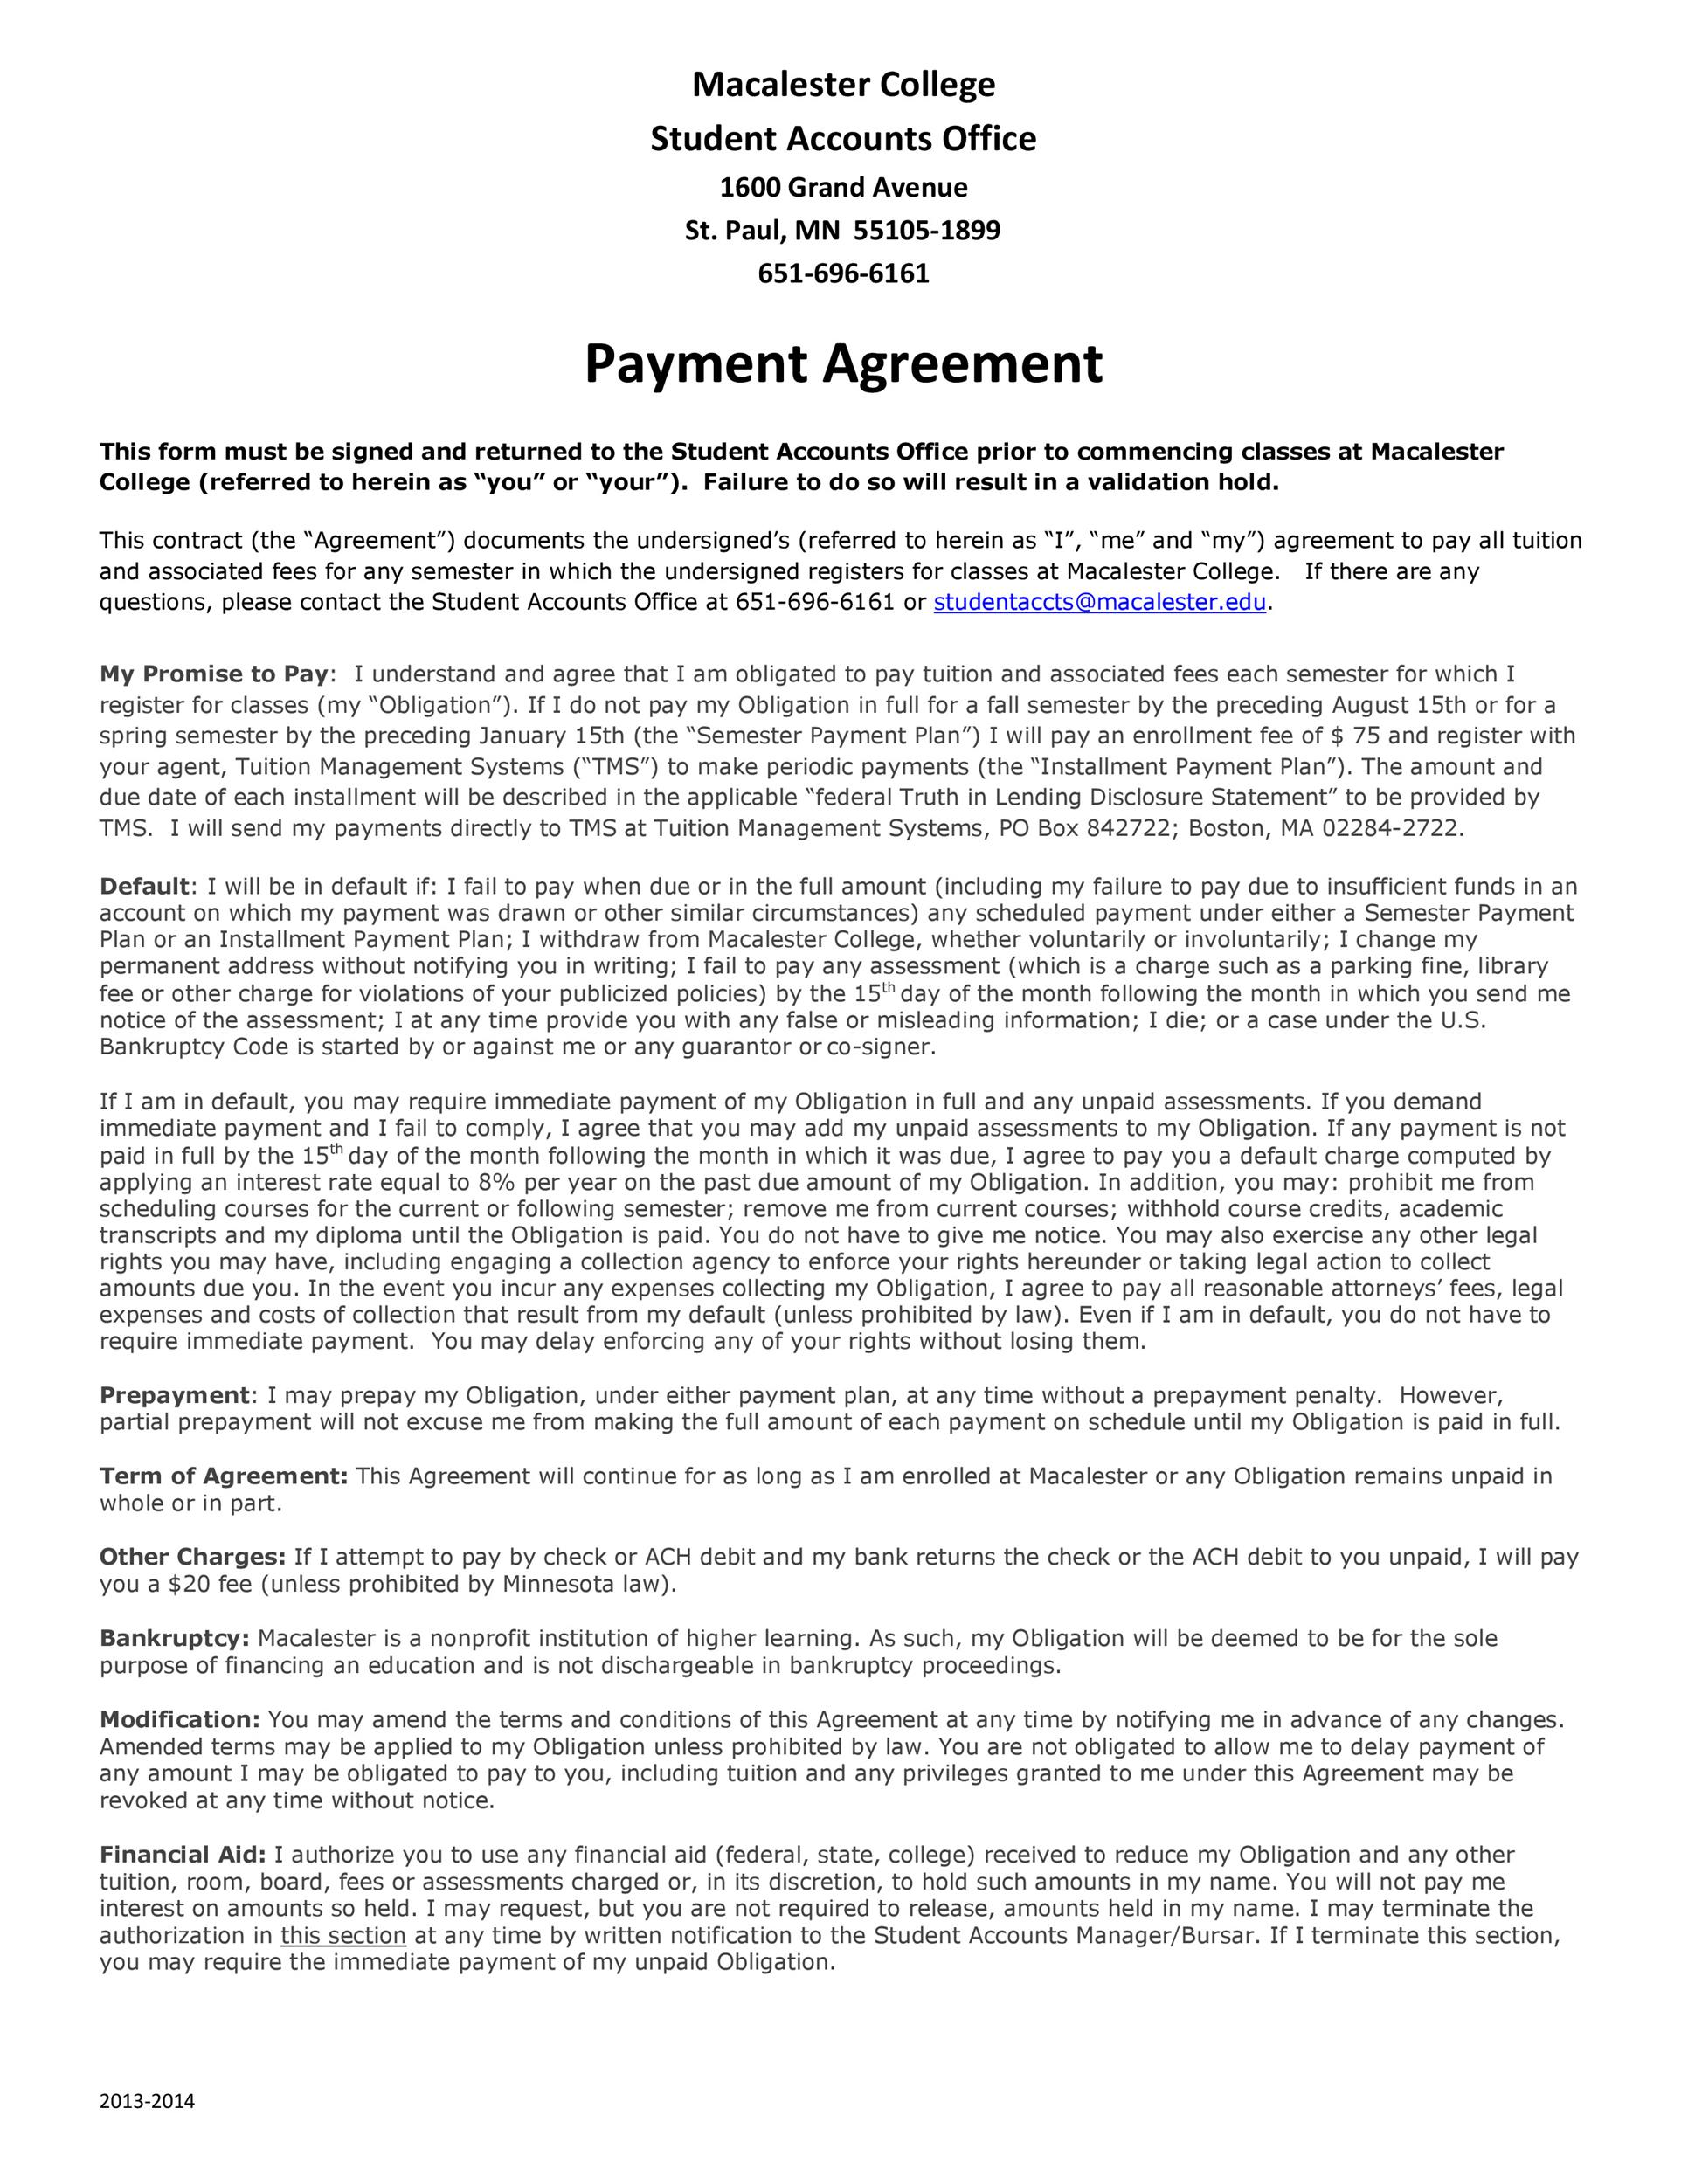 Payment Agreement Templates Contracts Template Lab - Contracts and agreements templates